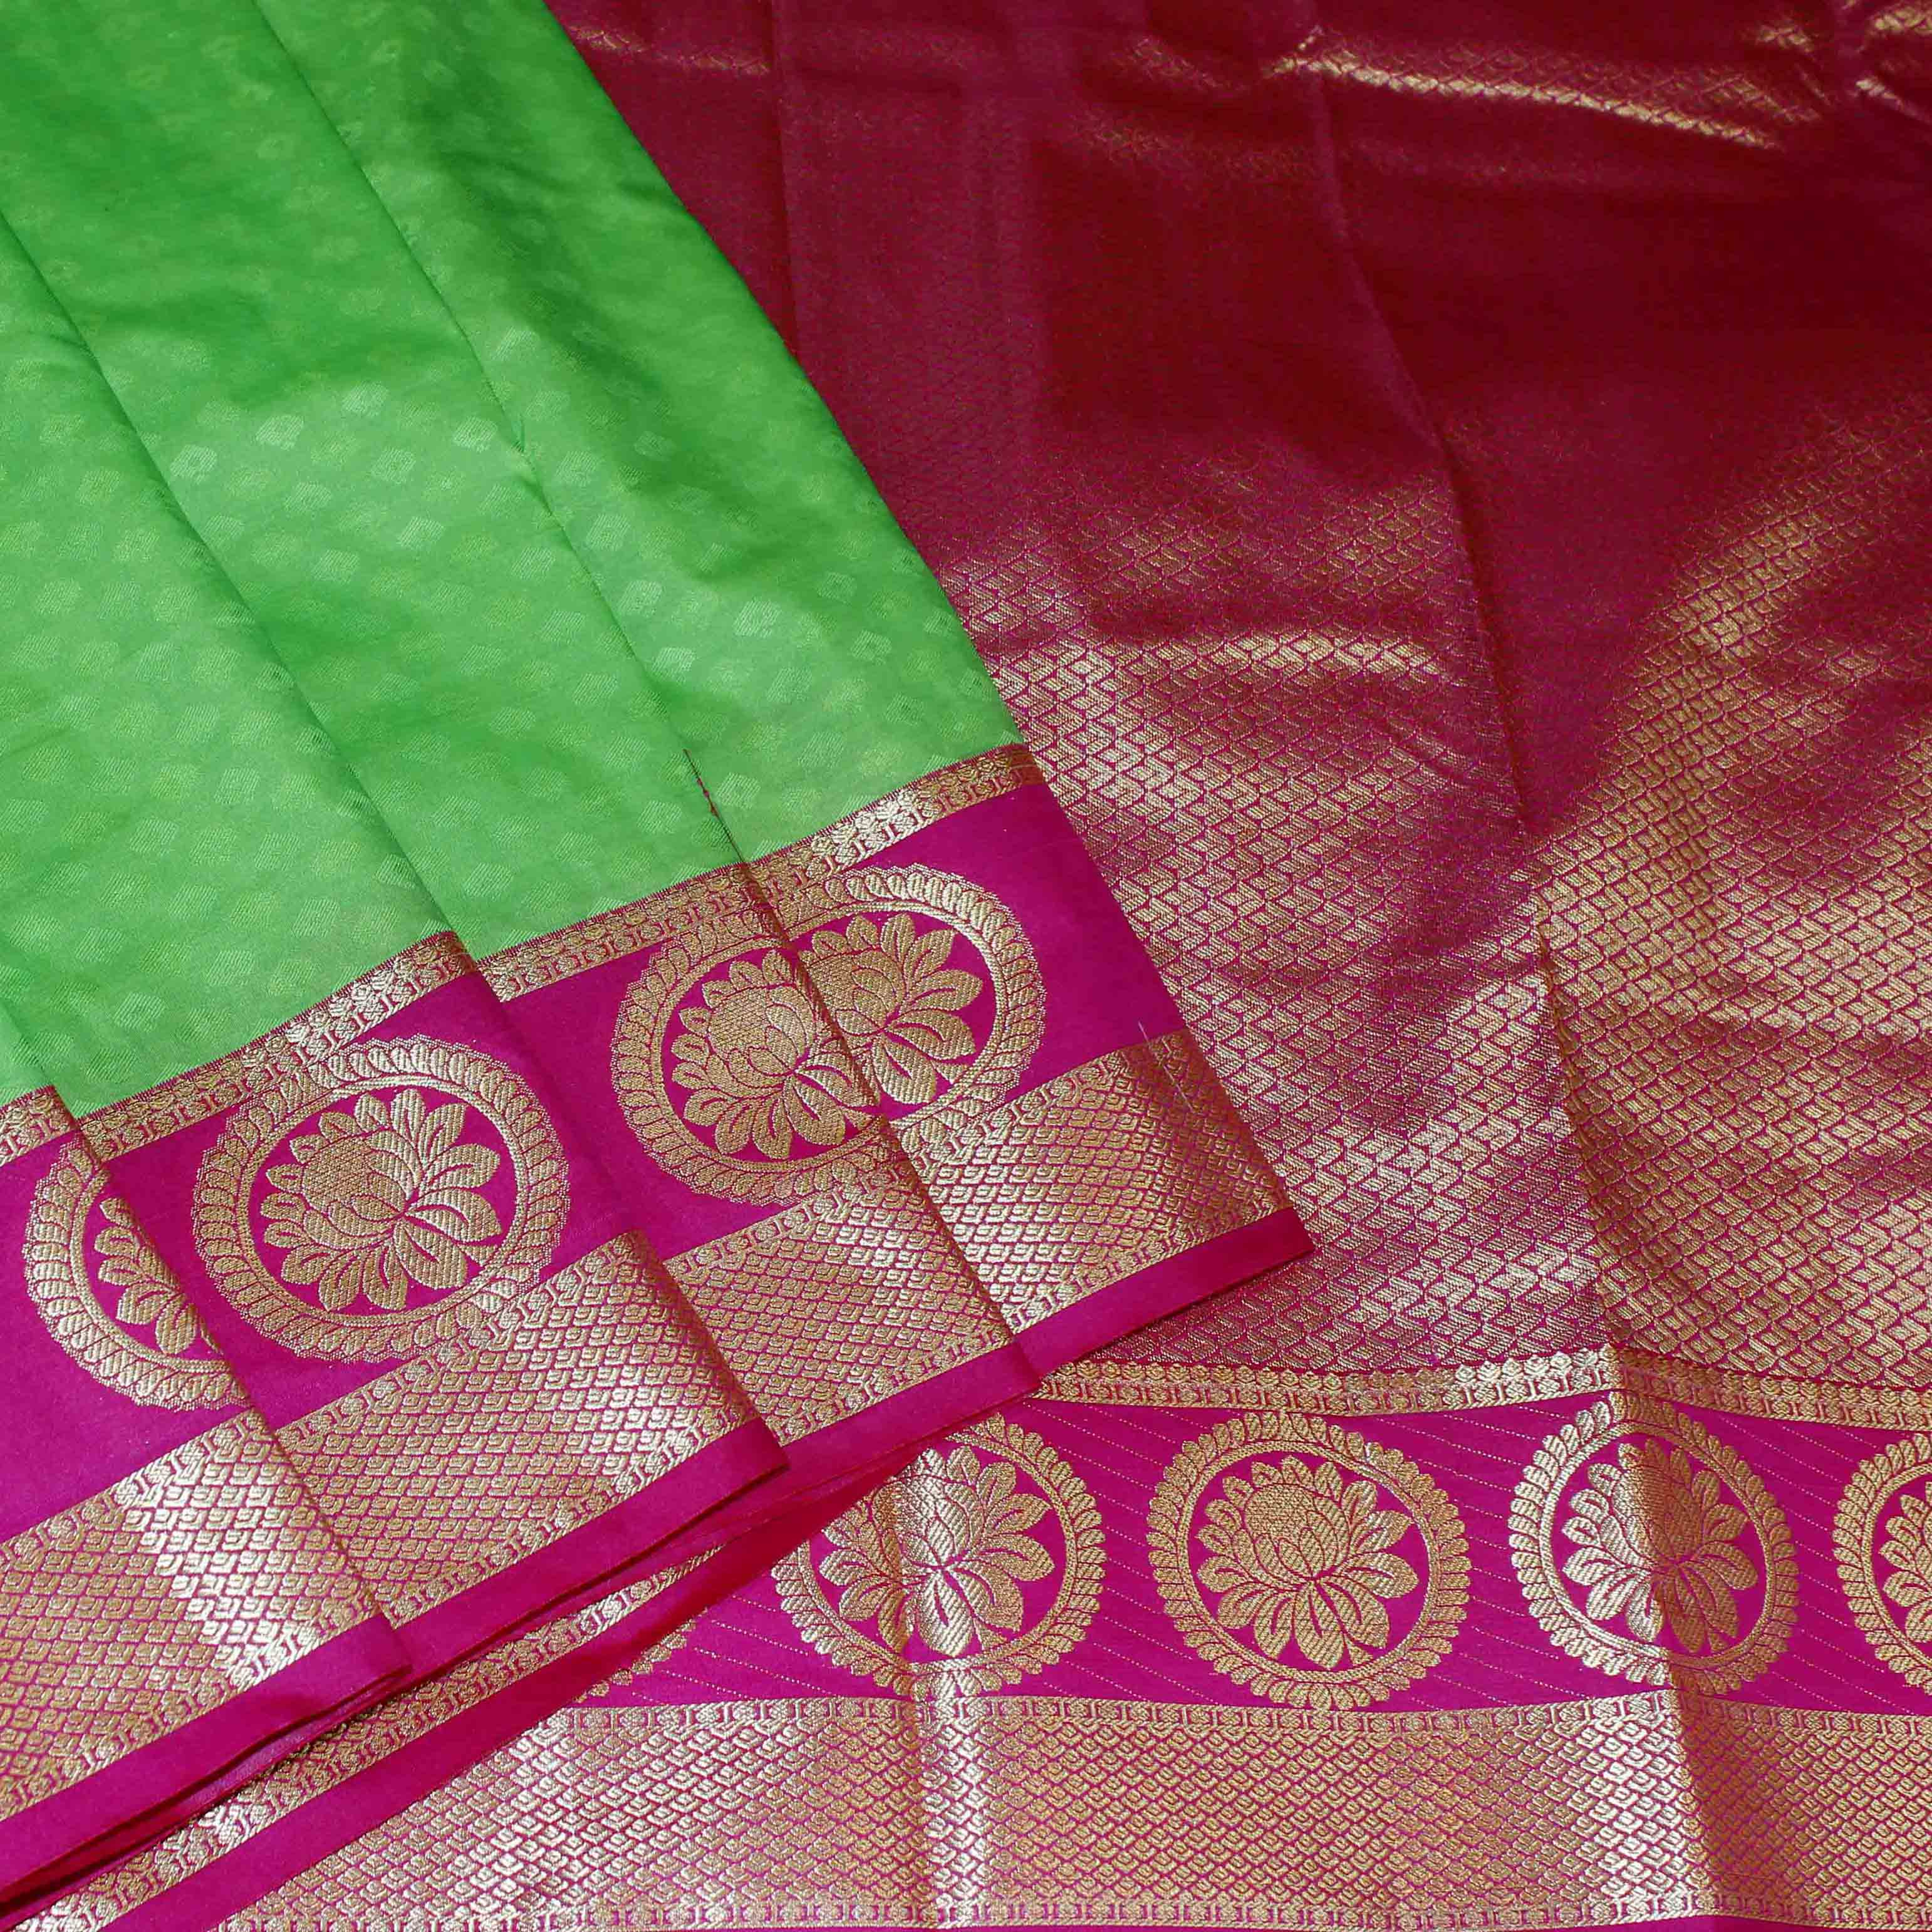 Mixture of green and red silk with golden jari